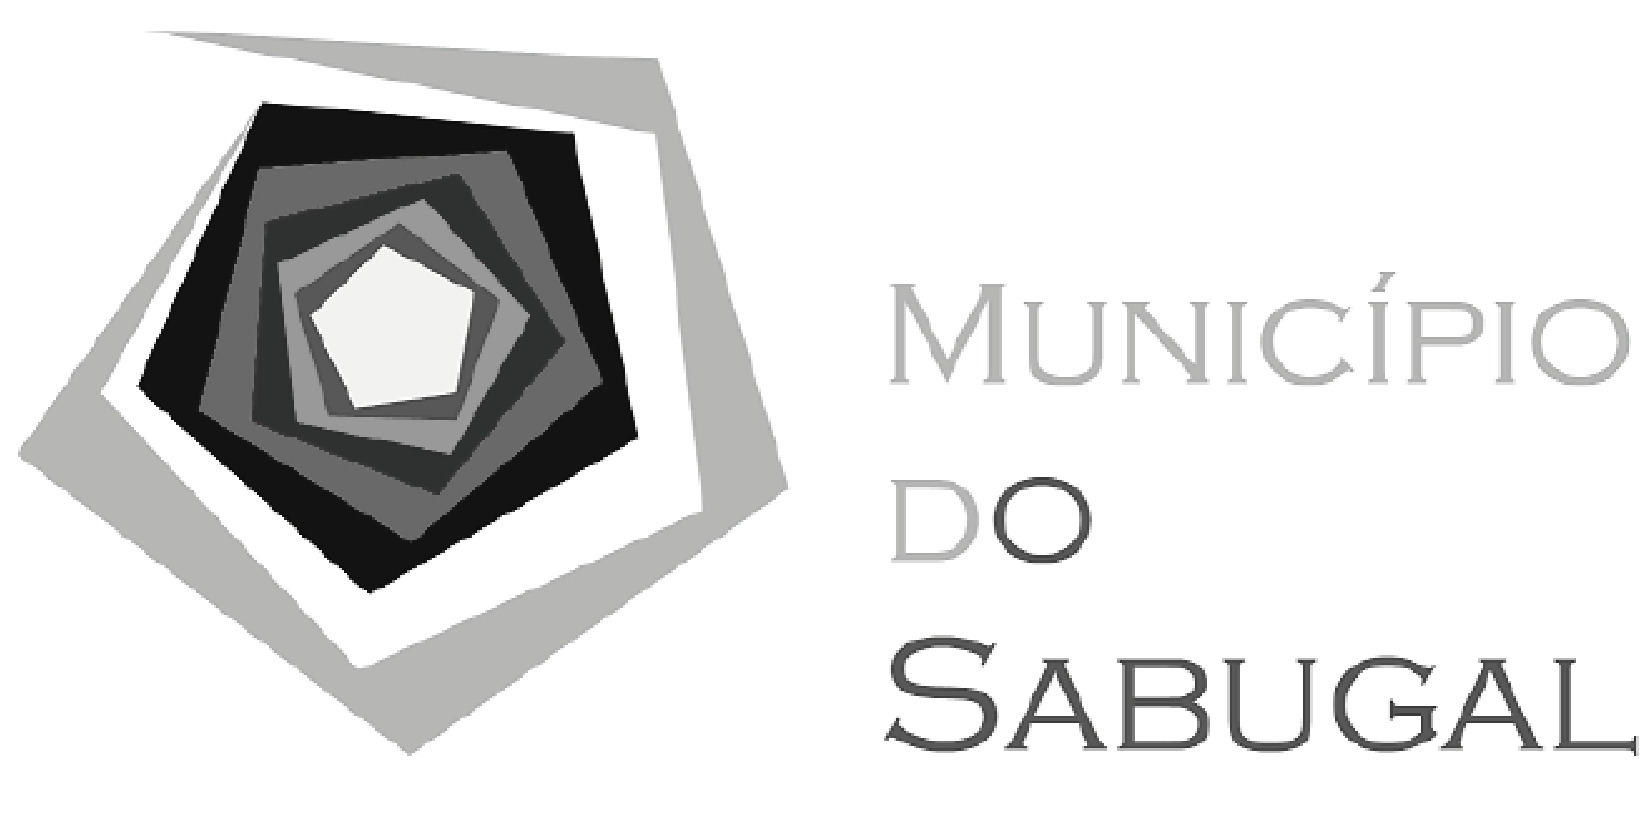 Camara Municipal do Sabugal